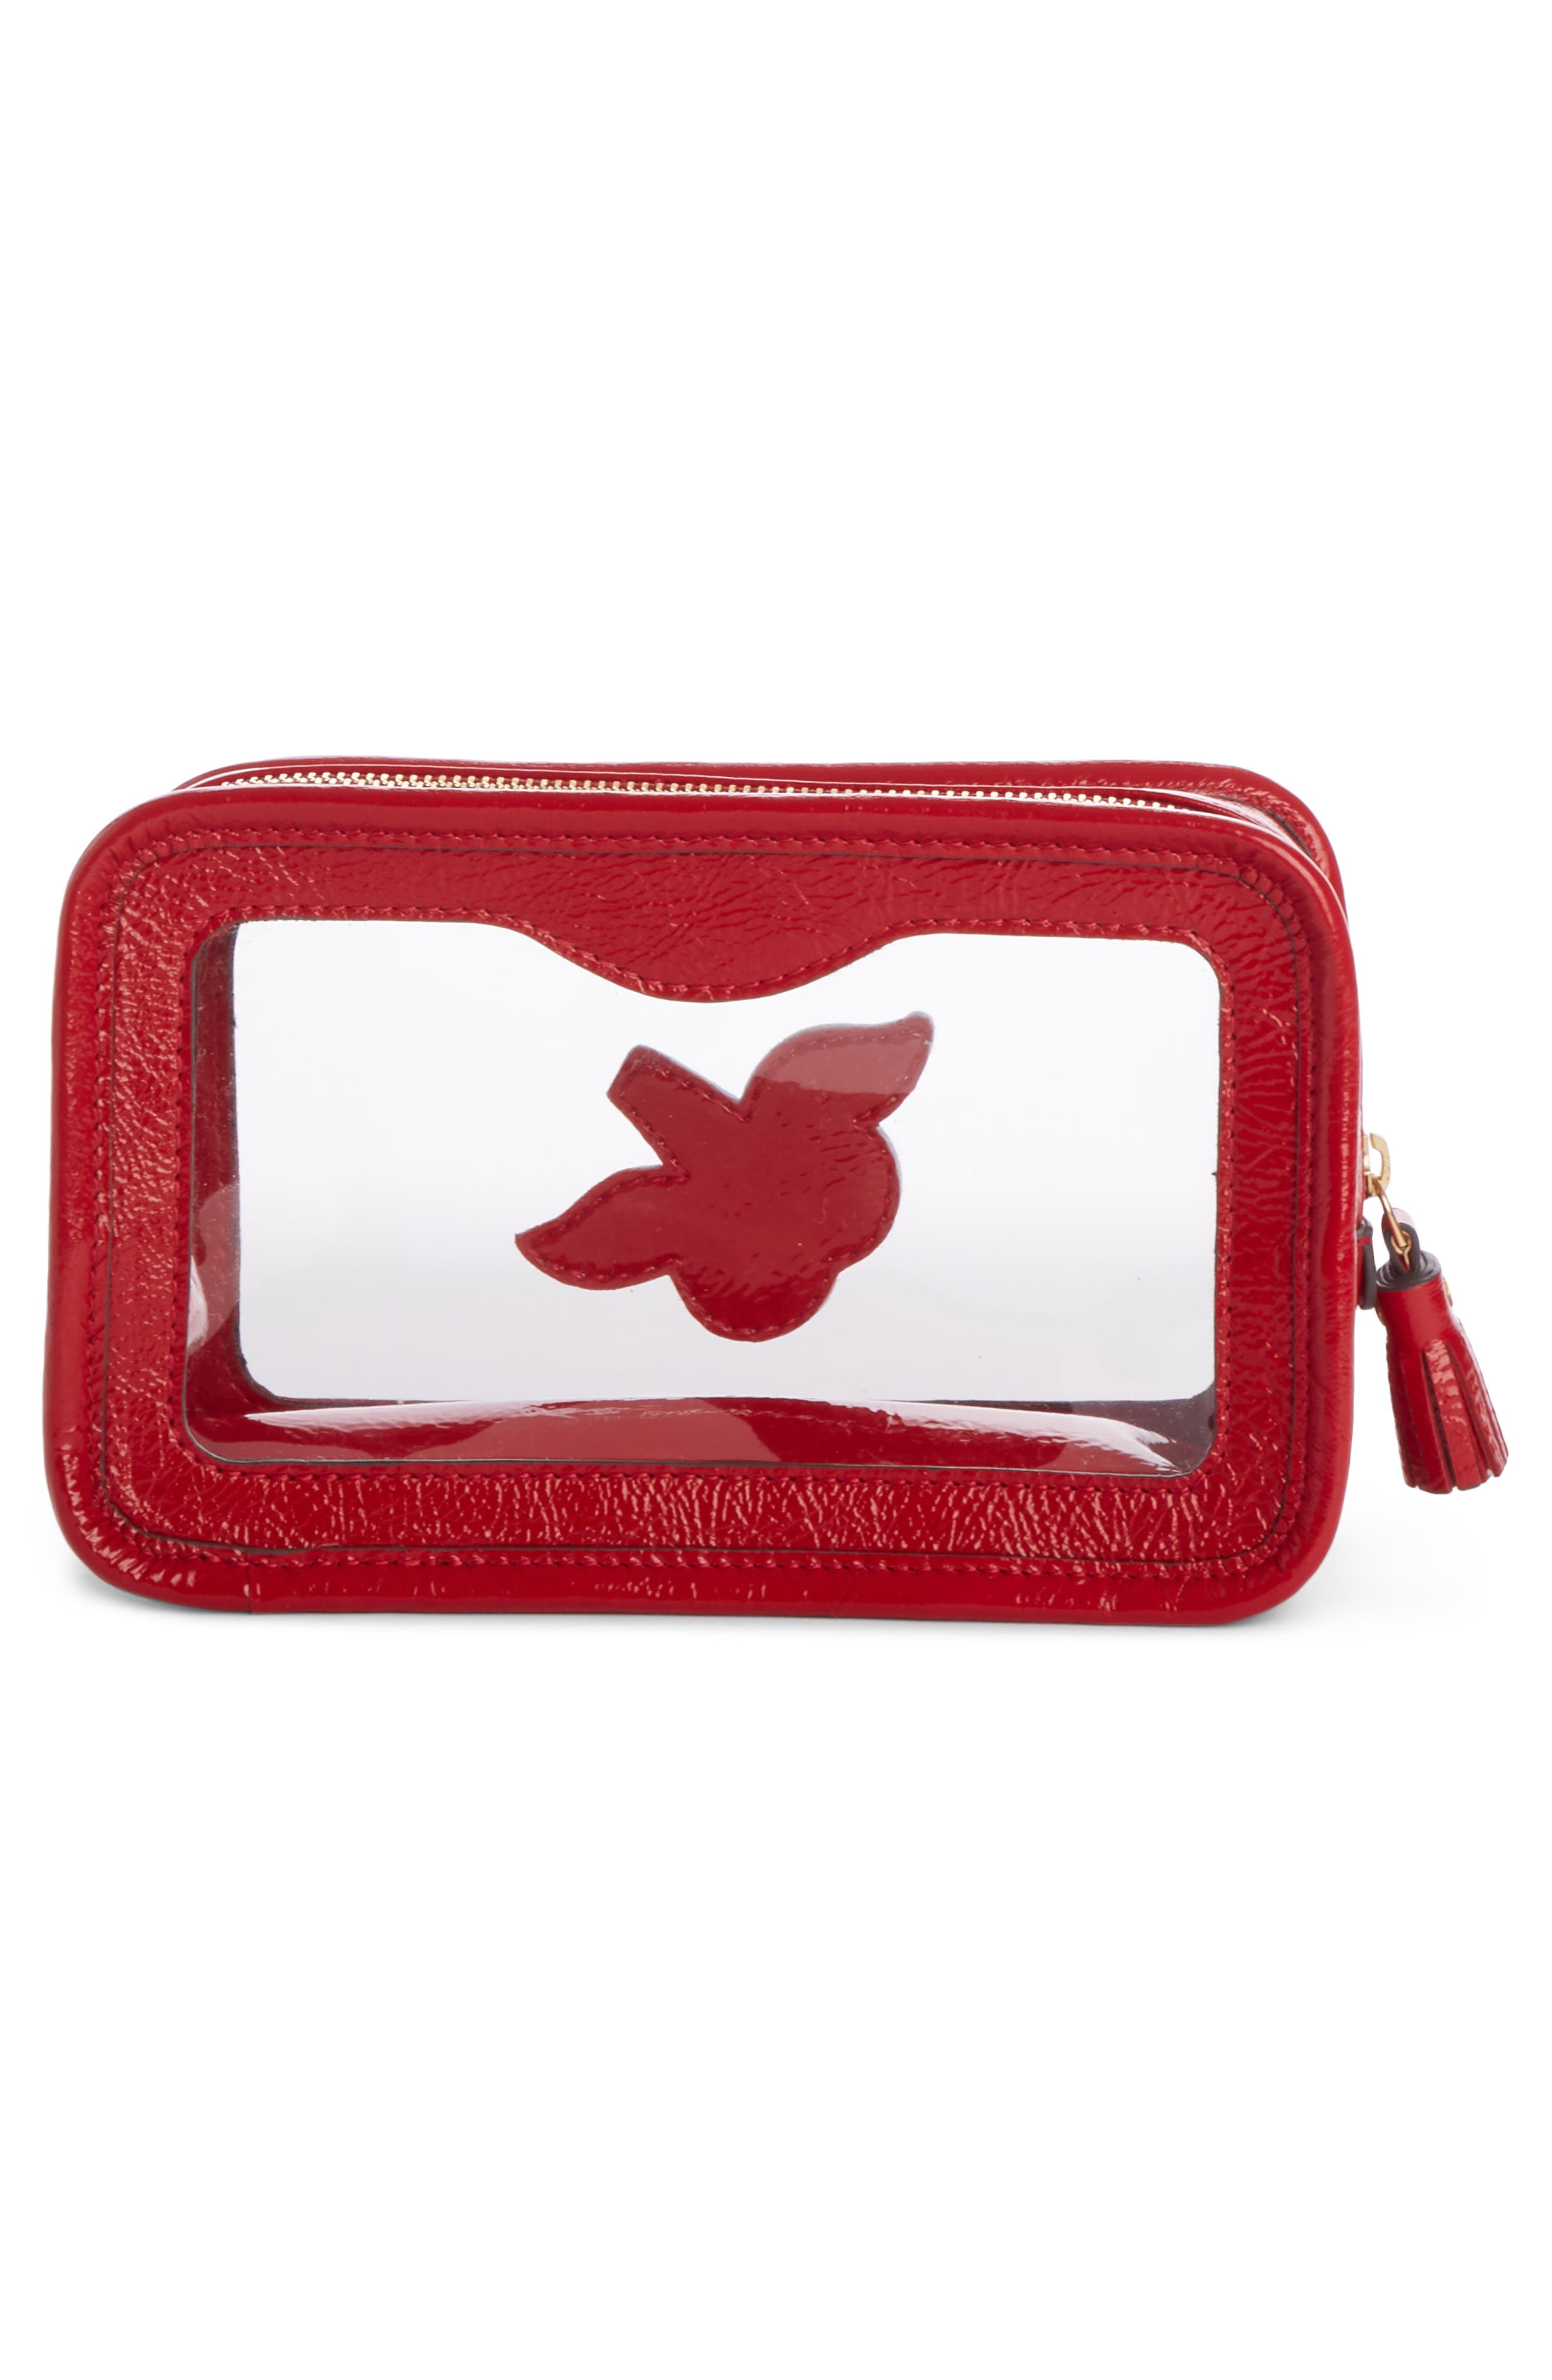 Rainy Day Cosmetic Bag,                             Alternate thumbnail 2, color,                             Red